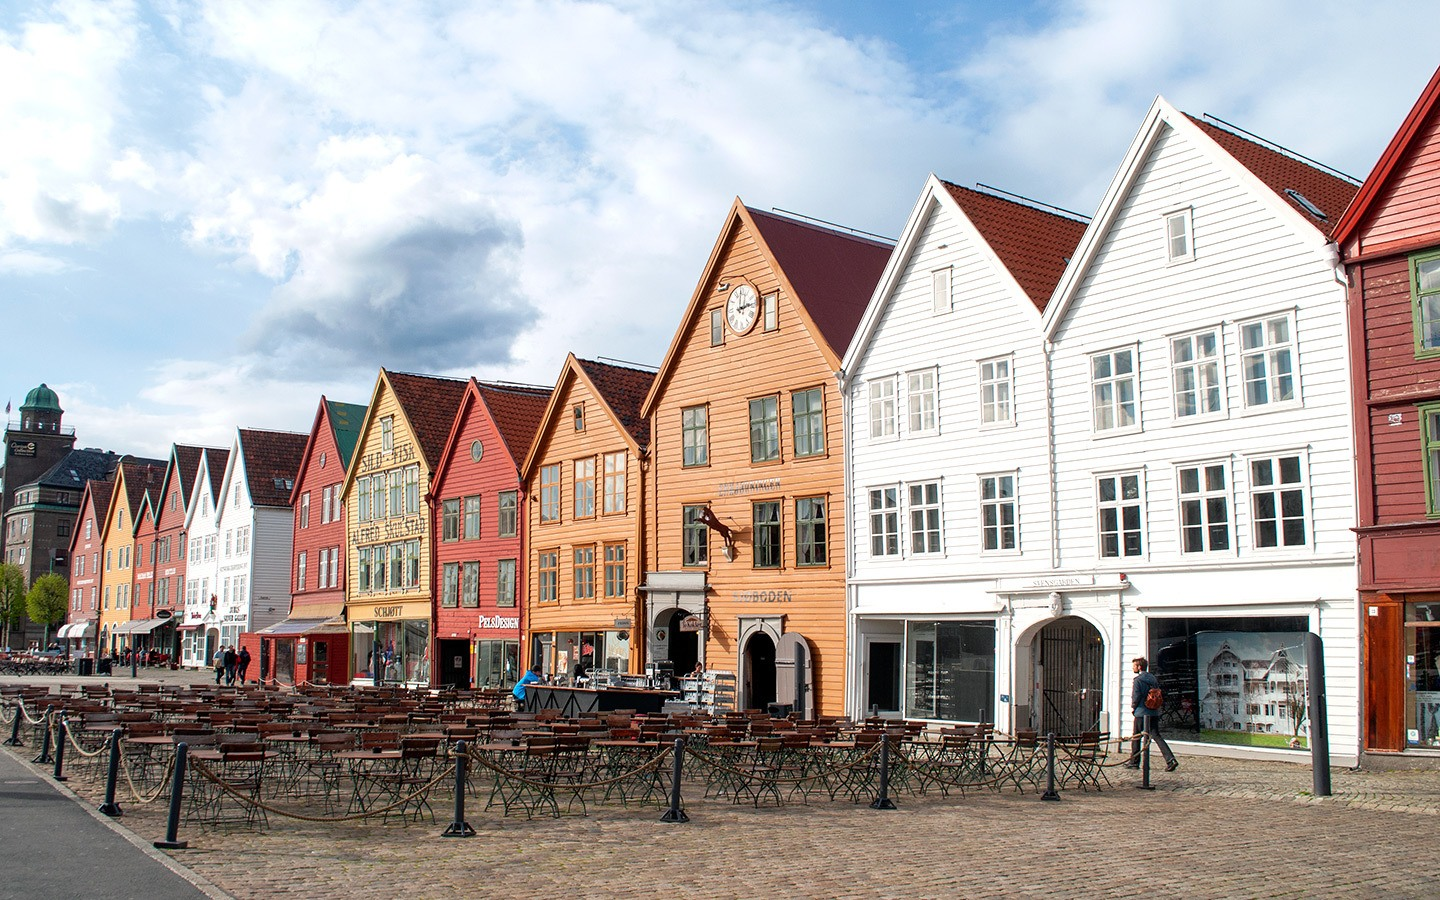 Historic buildings in Bryggen, Bergen, Norway